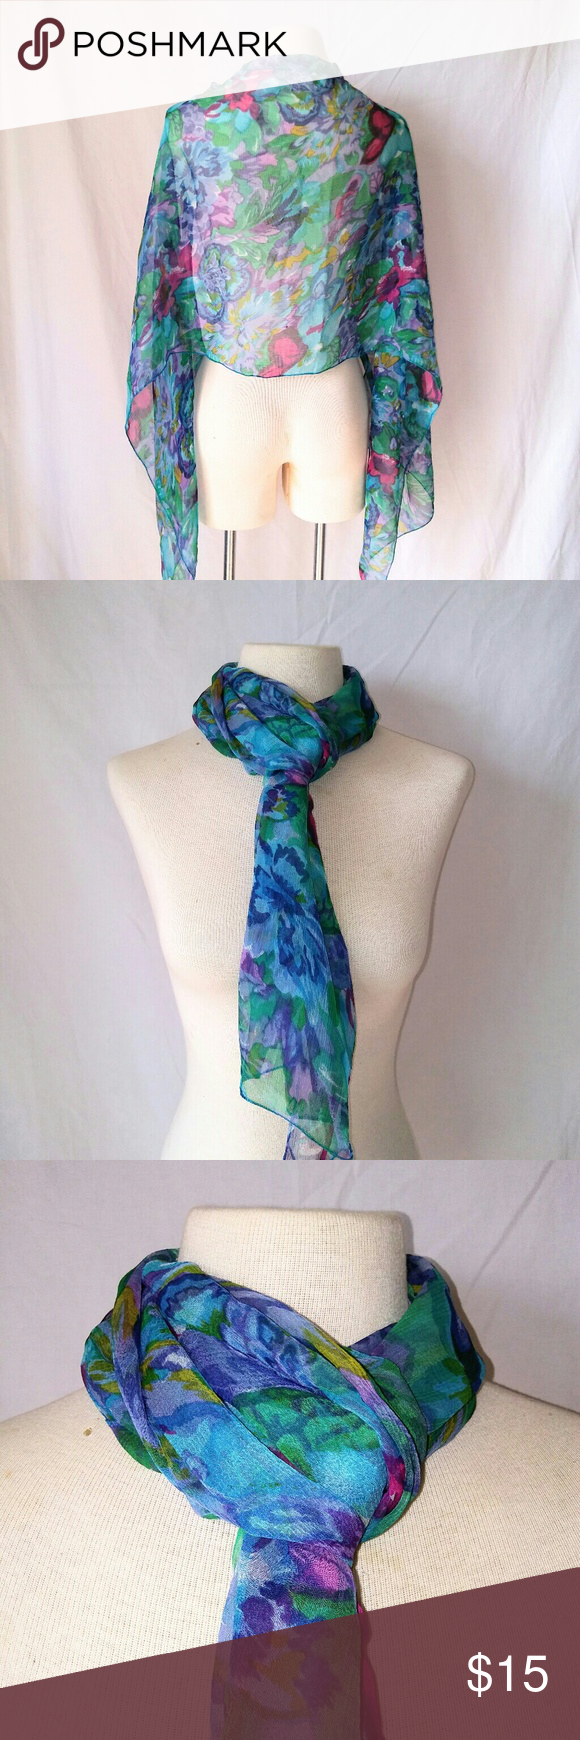 "2for1 SHEER Blues Scarf Blue, Pink, Green & Purple Watercolor Floral Design Large Sheer Rayon Scarf. In excellent used condition. From a smoke free home. Make an offer! SAVE on SHIPPING & get a DISCOUNT by making a BUNDLE! Get 20% off on 2+ items. 2for1 SCARF SALE: Buy one ""2for1"" scarf at full price and get another scarf of equal or lesser value for free! Purchase the first scarf, comment on the second scarf, & I'll ship both! Vintage Accessories Scarves & Wraps"